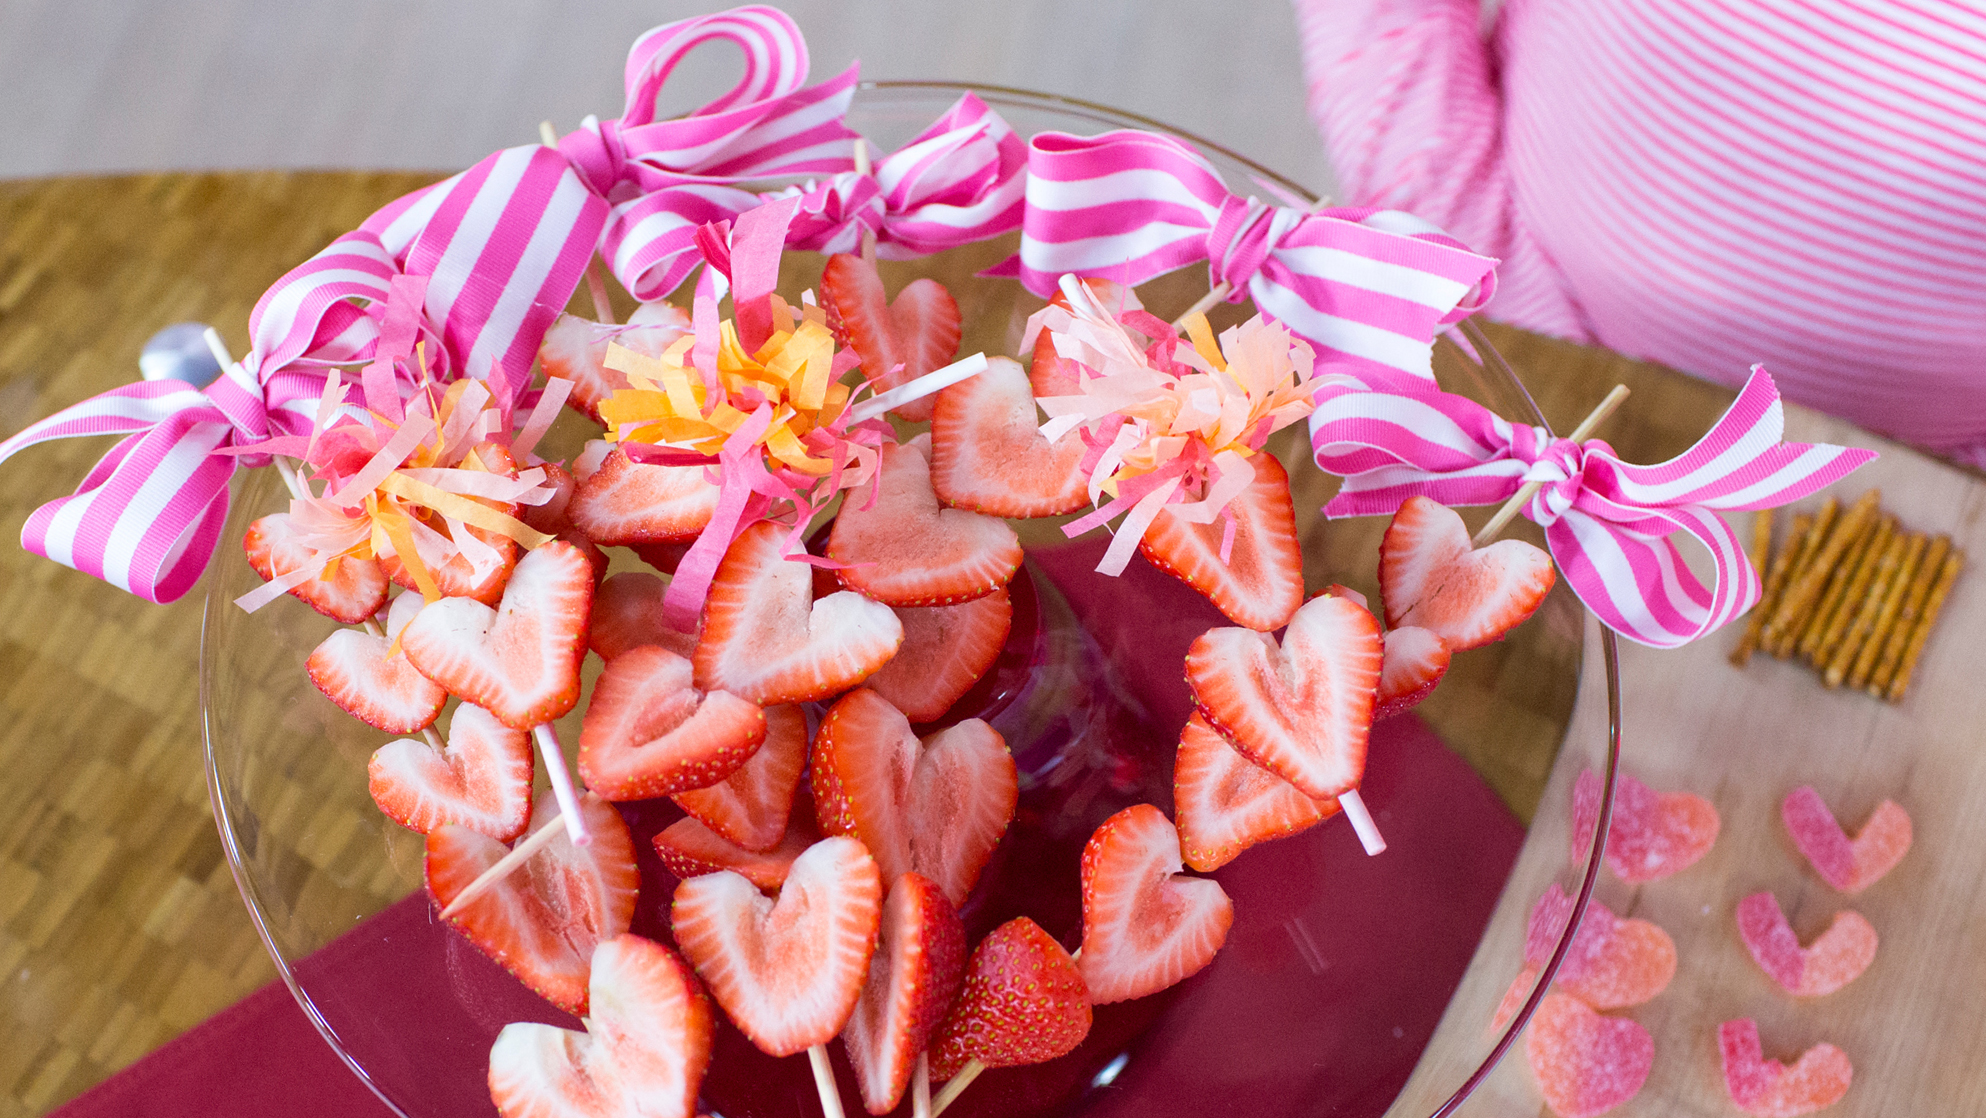 strawberry heart skewers todaycom